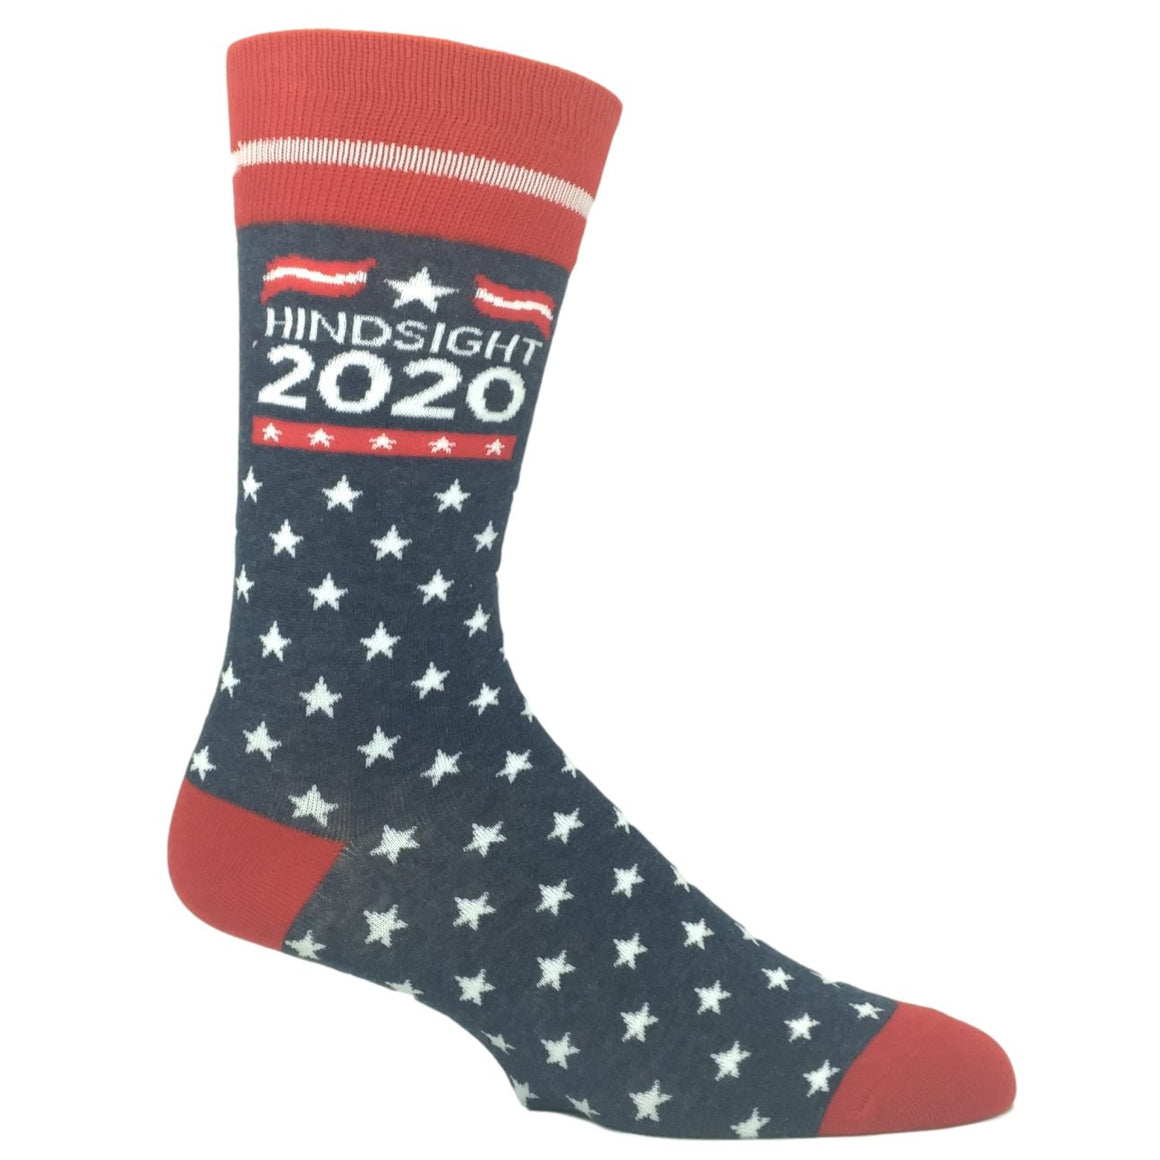 Hindsight 2020 Socks By Funatic